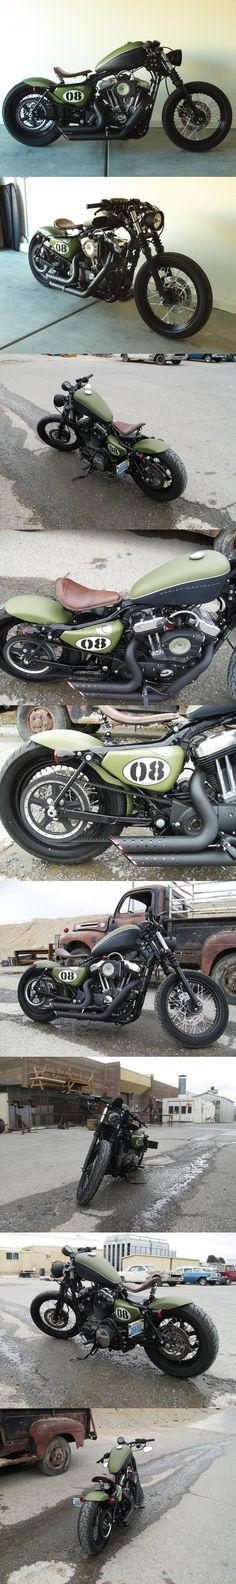 Nightster to bobber/board tracker cafe racer Low Storage Rates and Great Move-In Specials! Look no further Everest Self Storage is the place when you're out of space! Call today or stop by for a tour of our facility! Indoor Parking Available! Ideal for Classic Cars, Motorcycles, ATV's & Jet Skies 626-288-8182